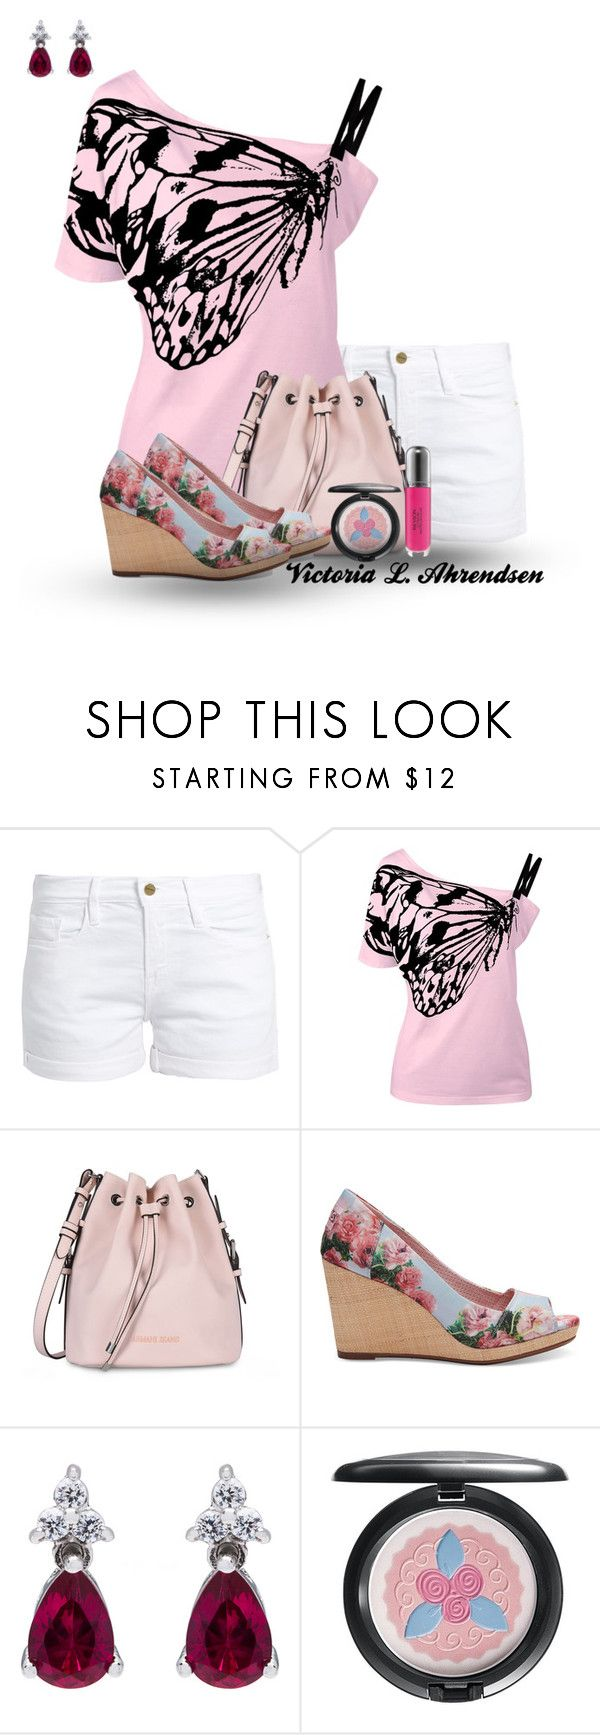 """Outfit Set #50! :-)"" by vahrendsen1988 ❤ liked on Polyvore featuring Frame, Armani Jeans, TOMS, MAC Cosmetics, Revlon, Pink and casualoutfit"